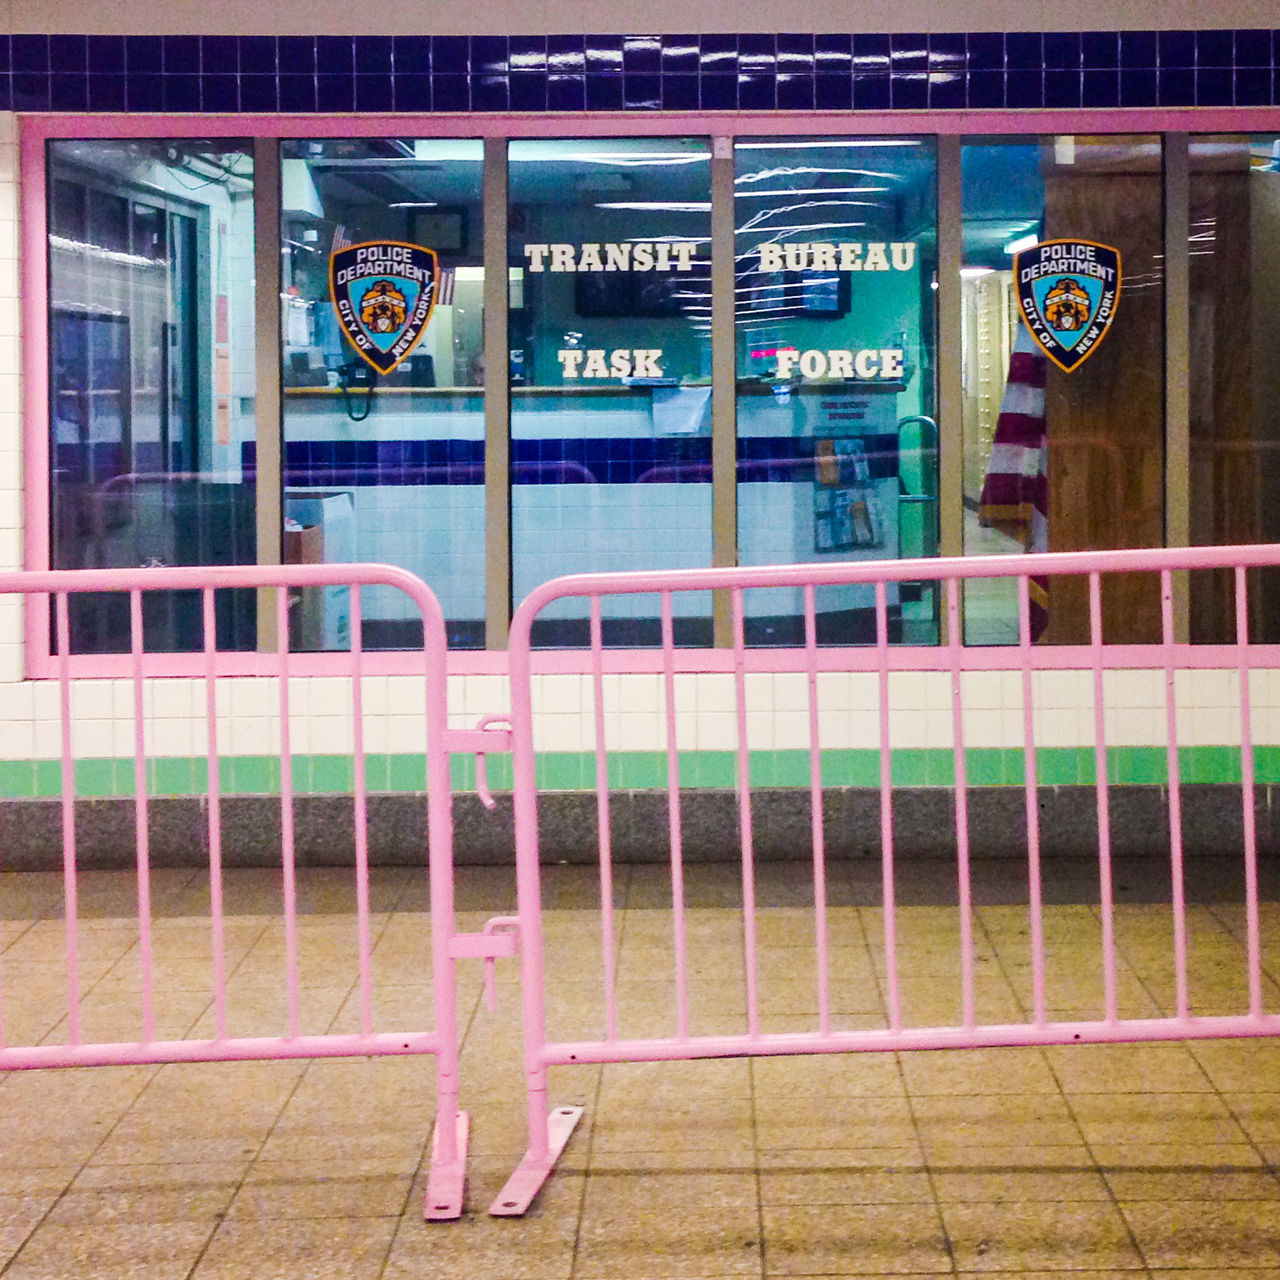 Pink Police Barriers New York Subway Transit Subway Colors Resist Solidarity Queer Police Pink NYC NY New York City GenderEquality Progress Gayrights Freedom Color Barrier Gayrights